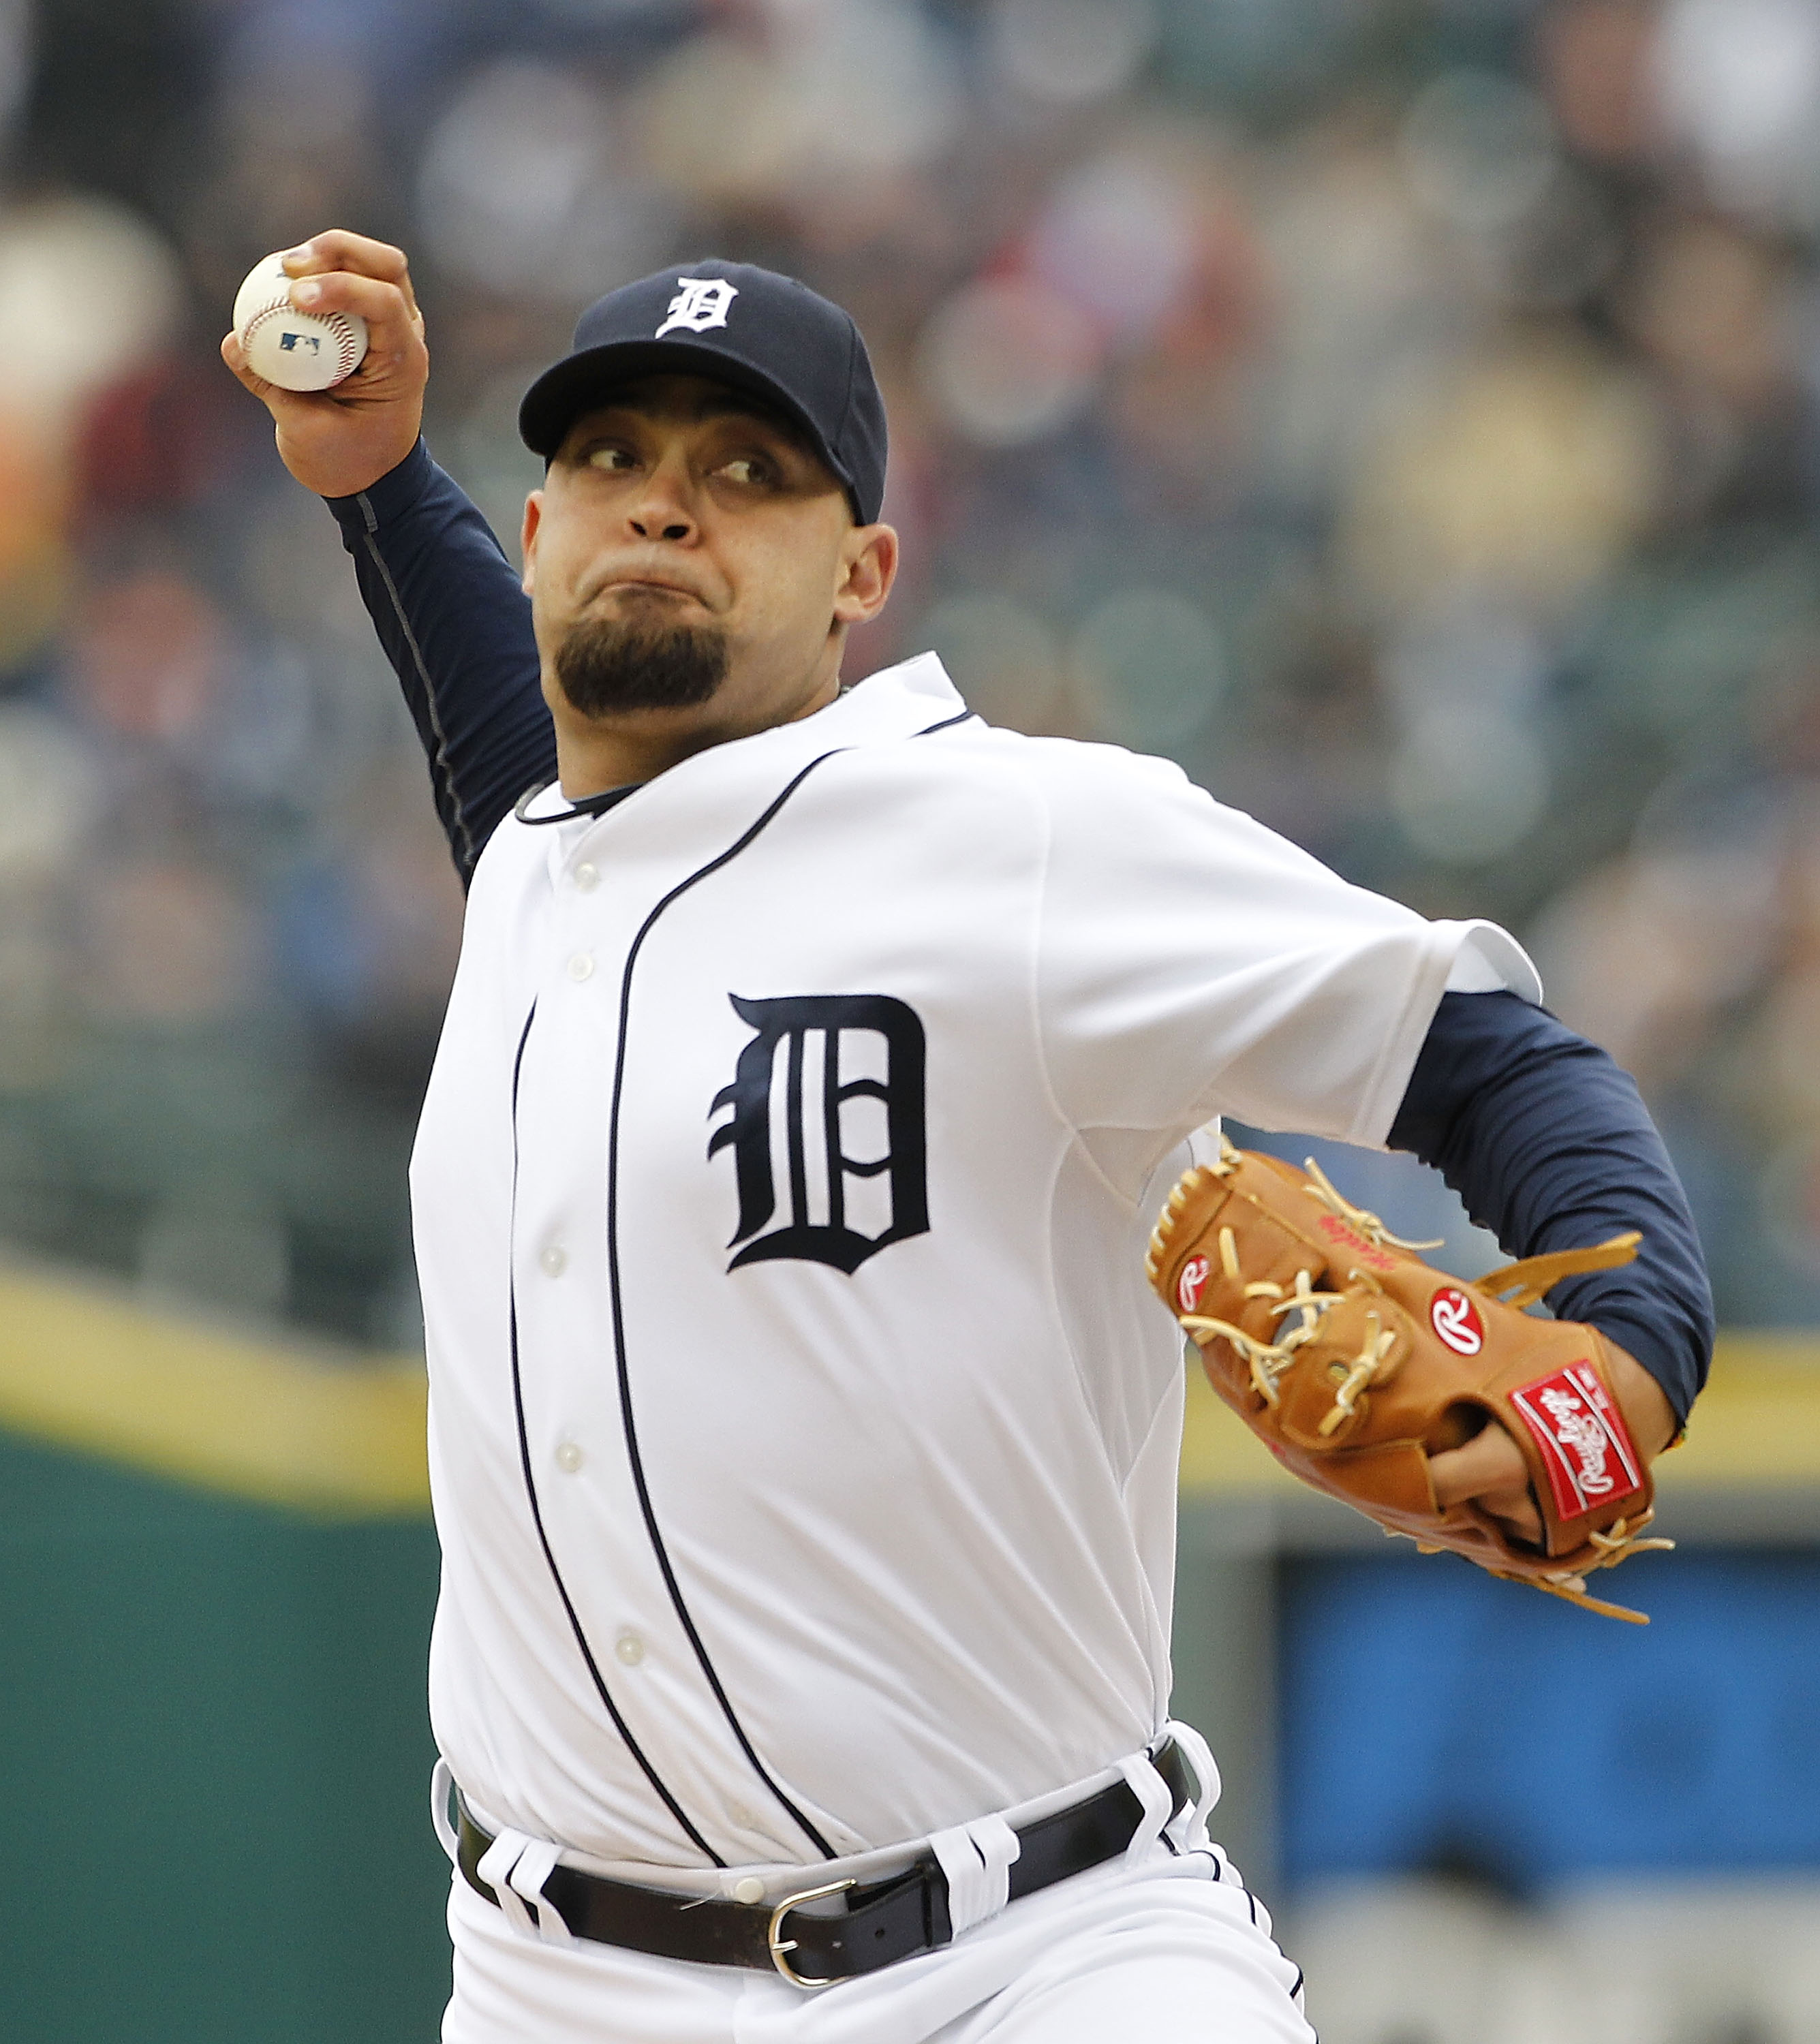 DETROIT - MAY 13: Joel Zumaya #54 of the Detroit Tigers pitches in the eighth inning against the New York Yankees on May 13, 2010 at Comerica Park in Detroit, Michigan. The Tigers defeated the Yankees 6-0.  (Photo by Leon Halip/Getty Images)